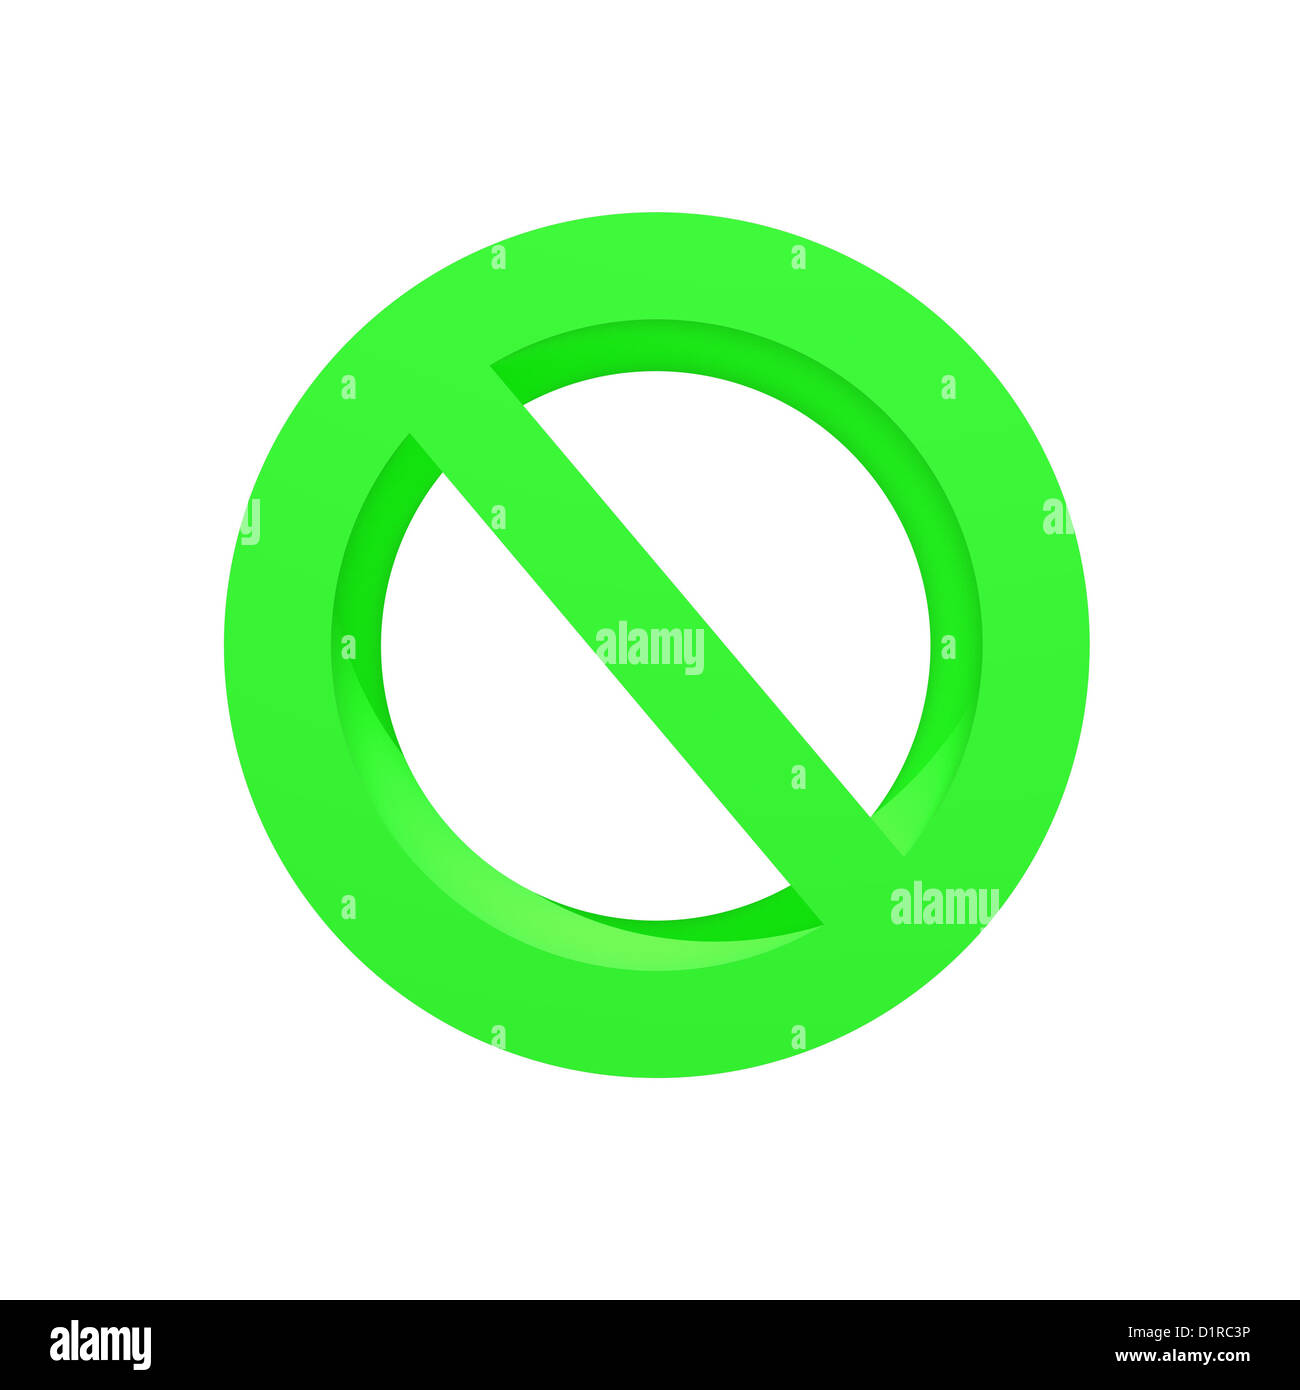 A 3d no entry symbol isolated on a white background - Stock Image